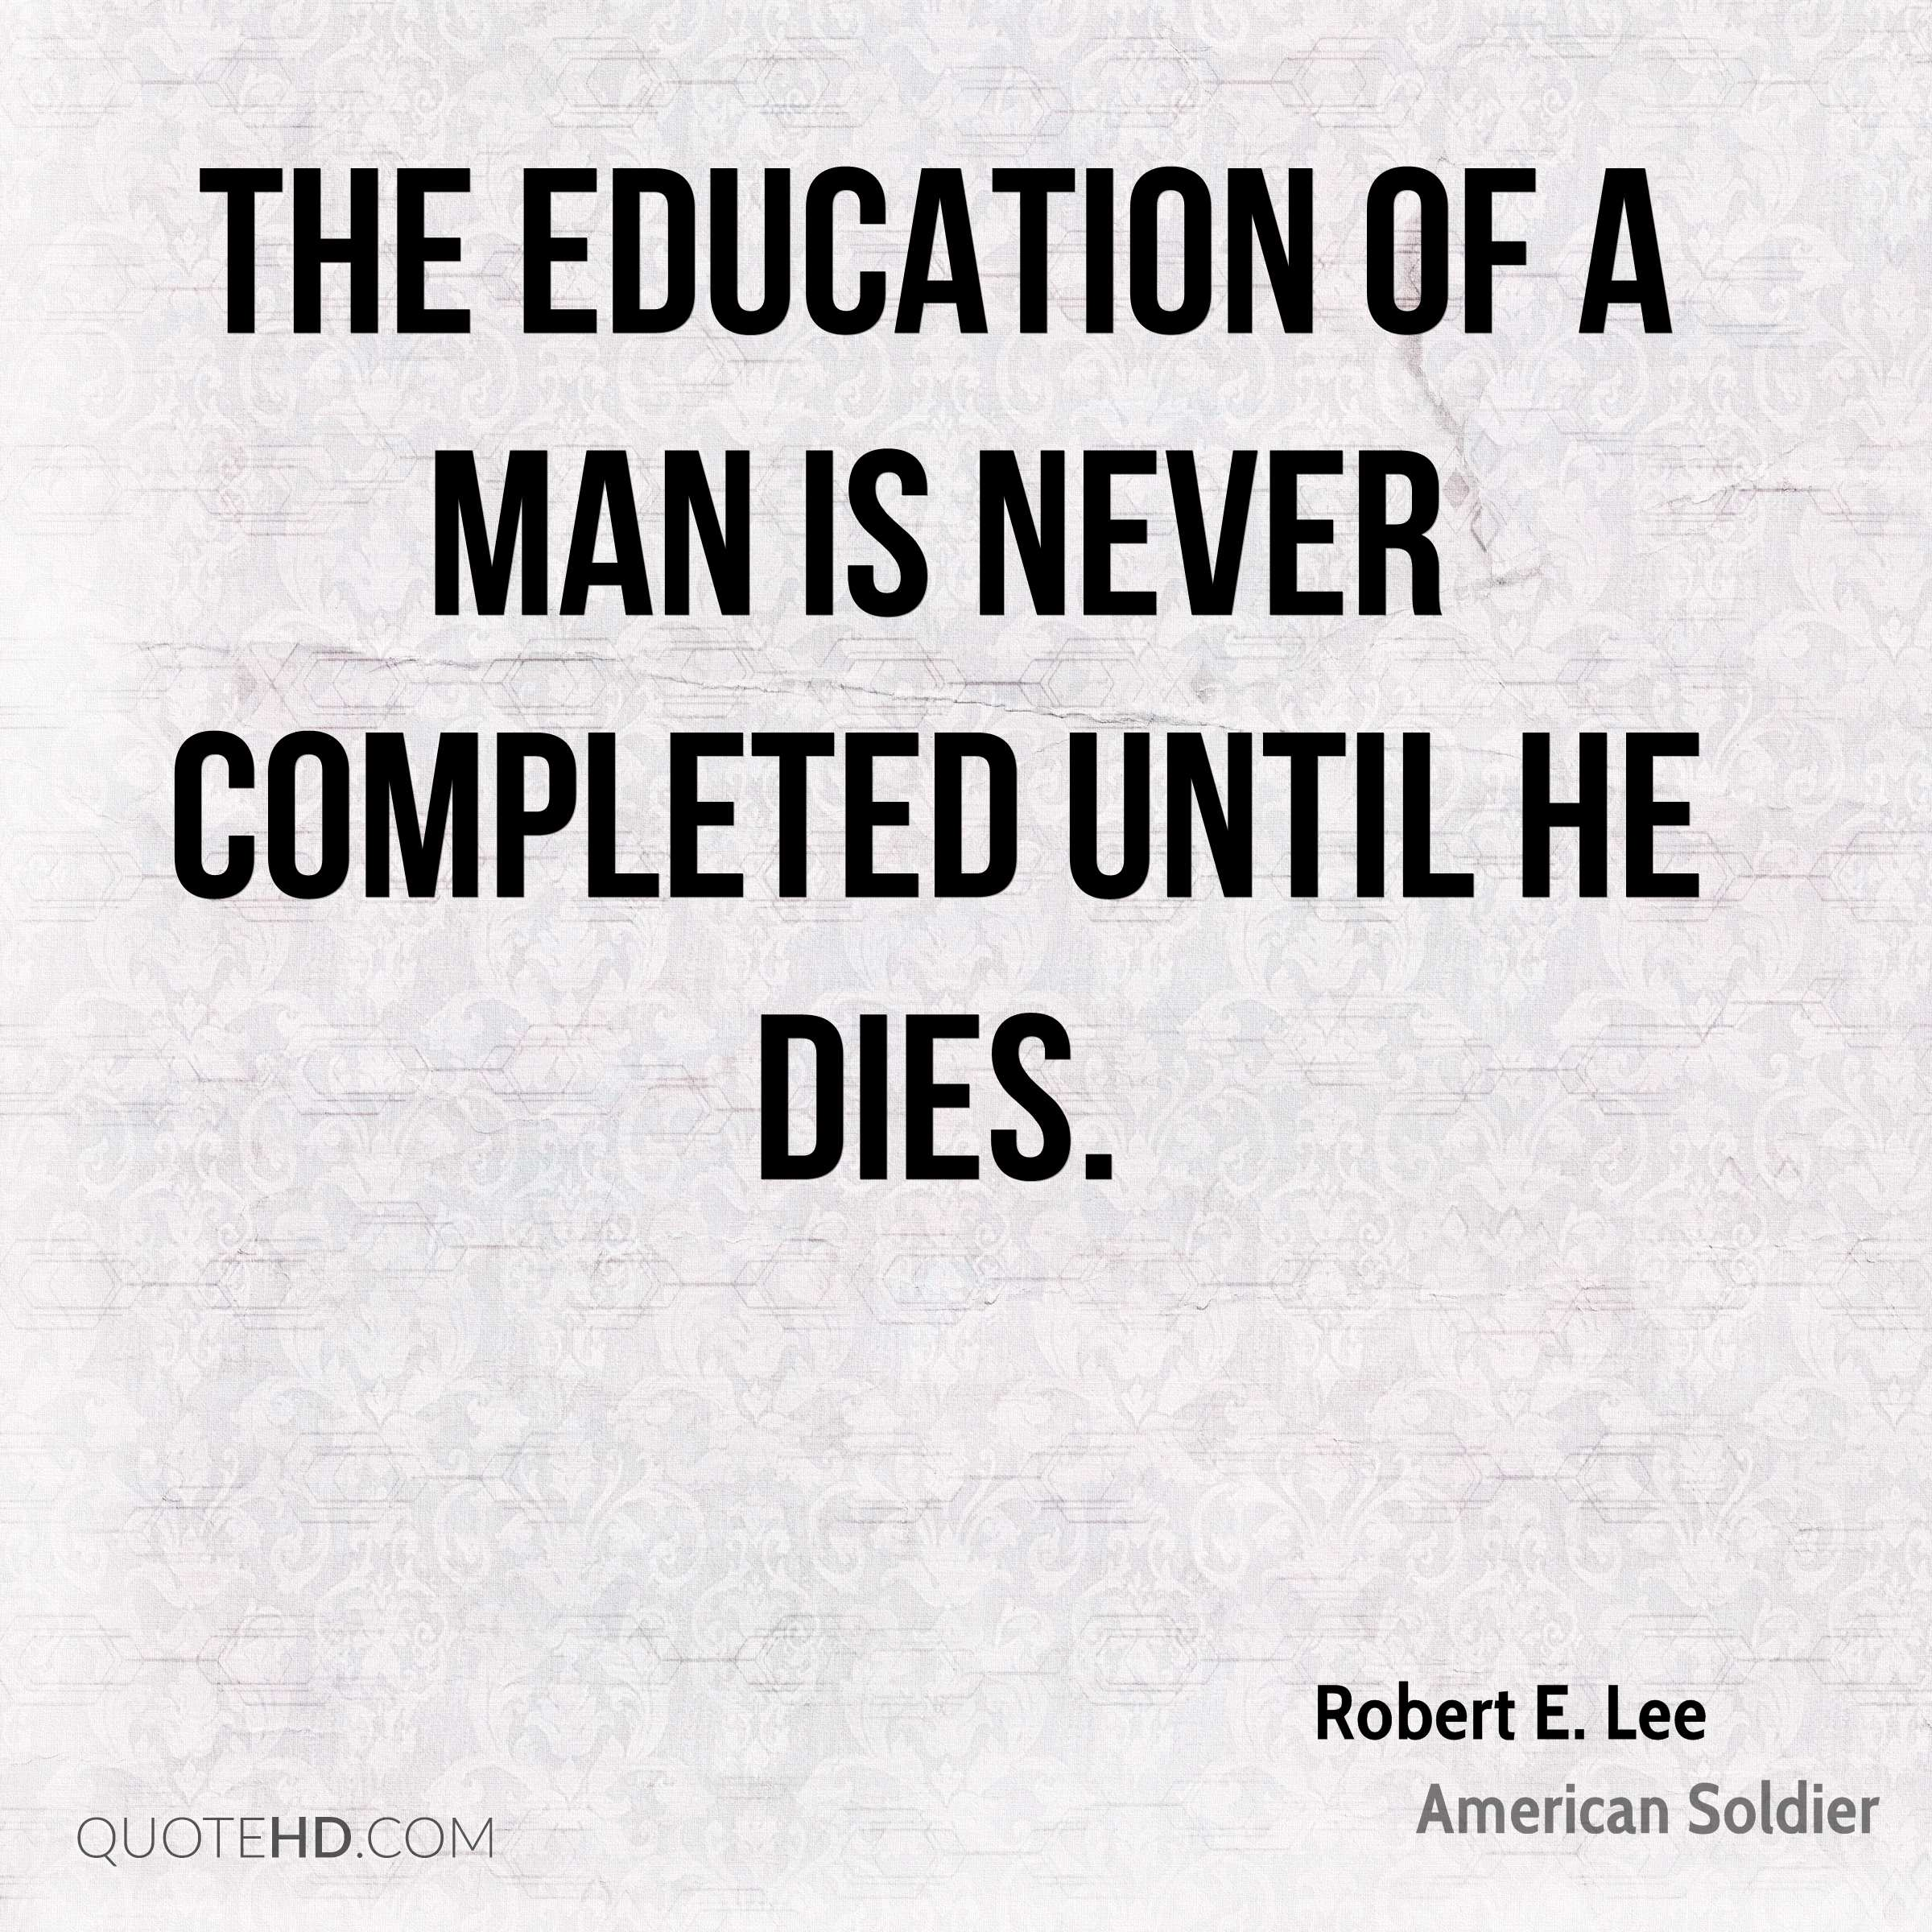 The education of a man is never completed until he dies.